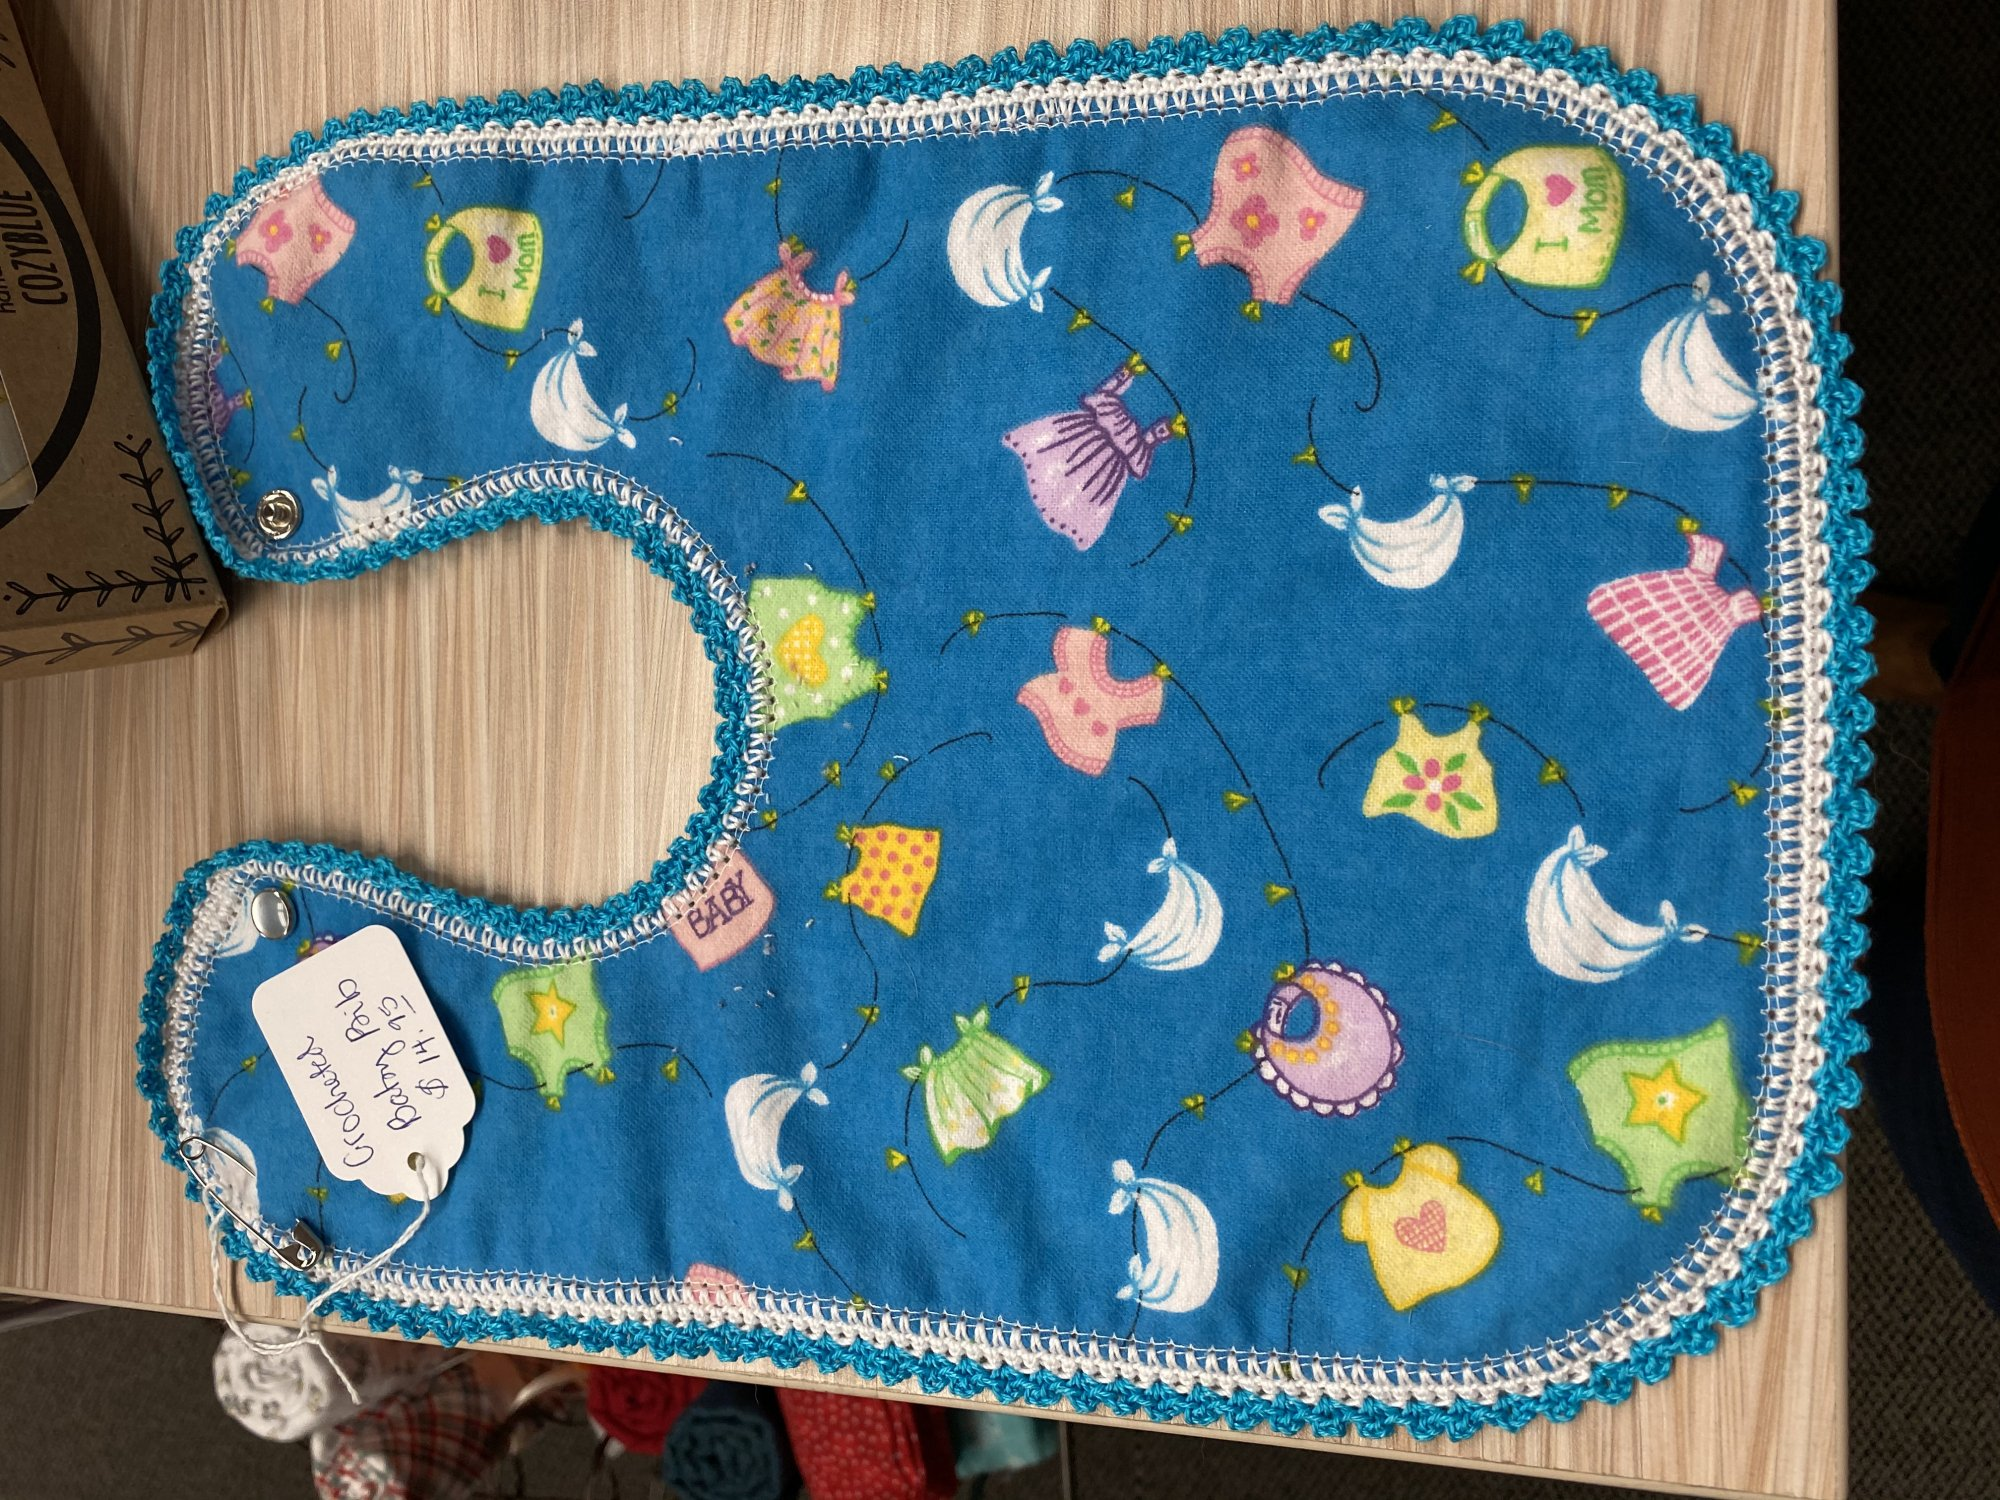 Crocheted Bib with Snap Closure - Baby Clothes on Laundry Line